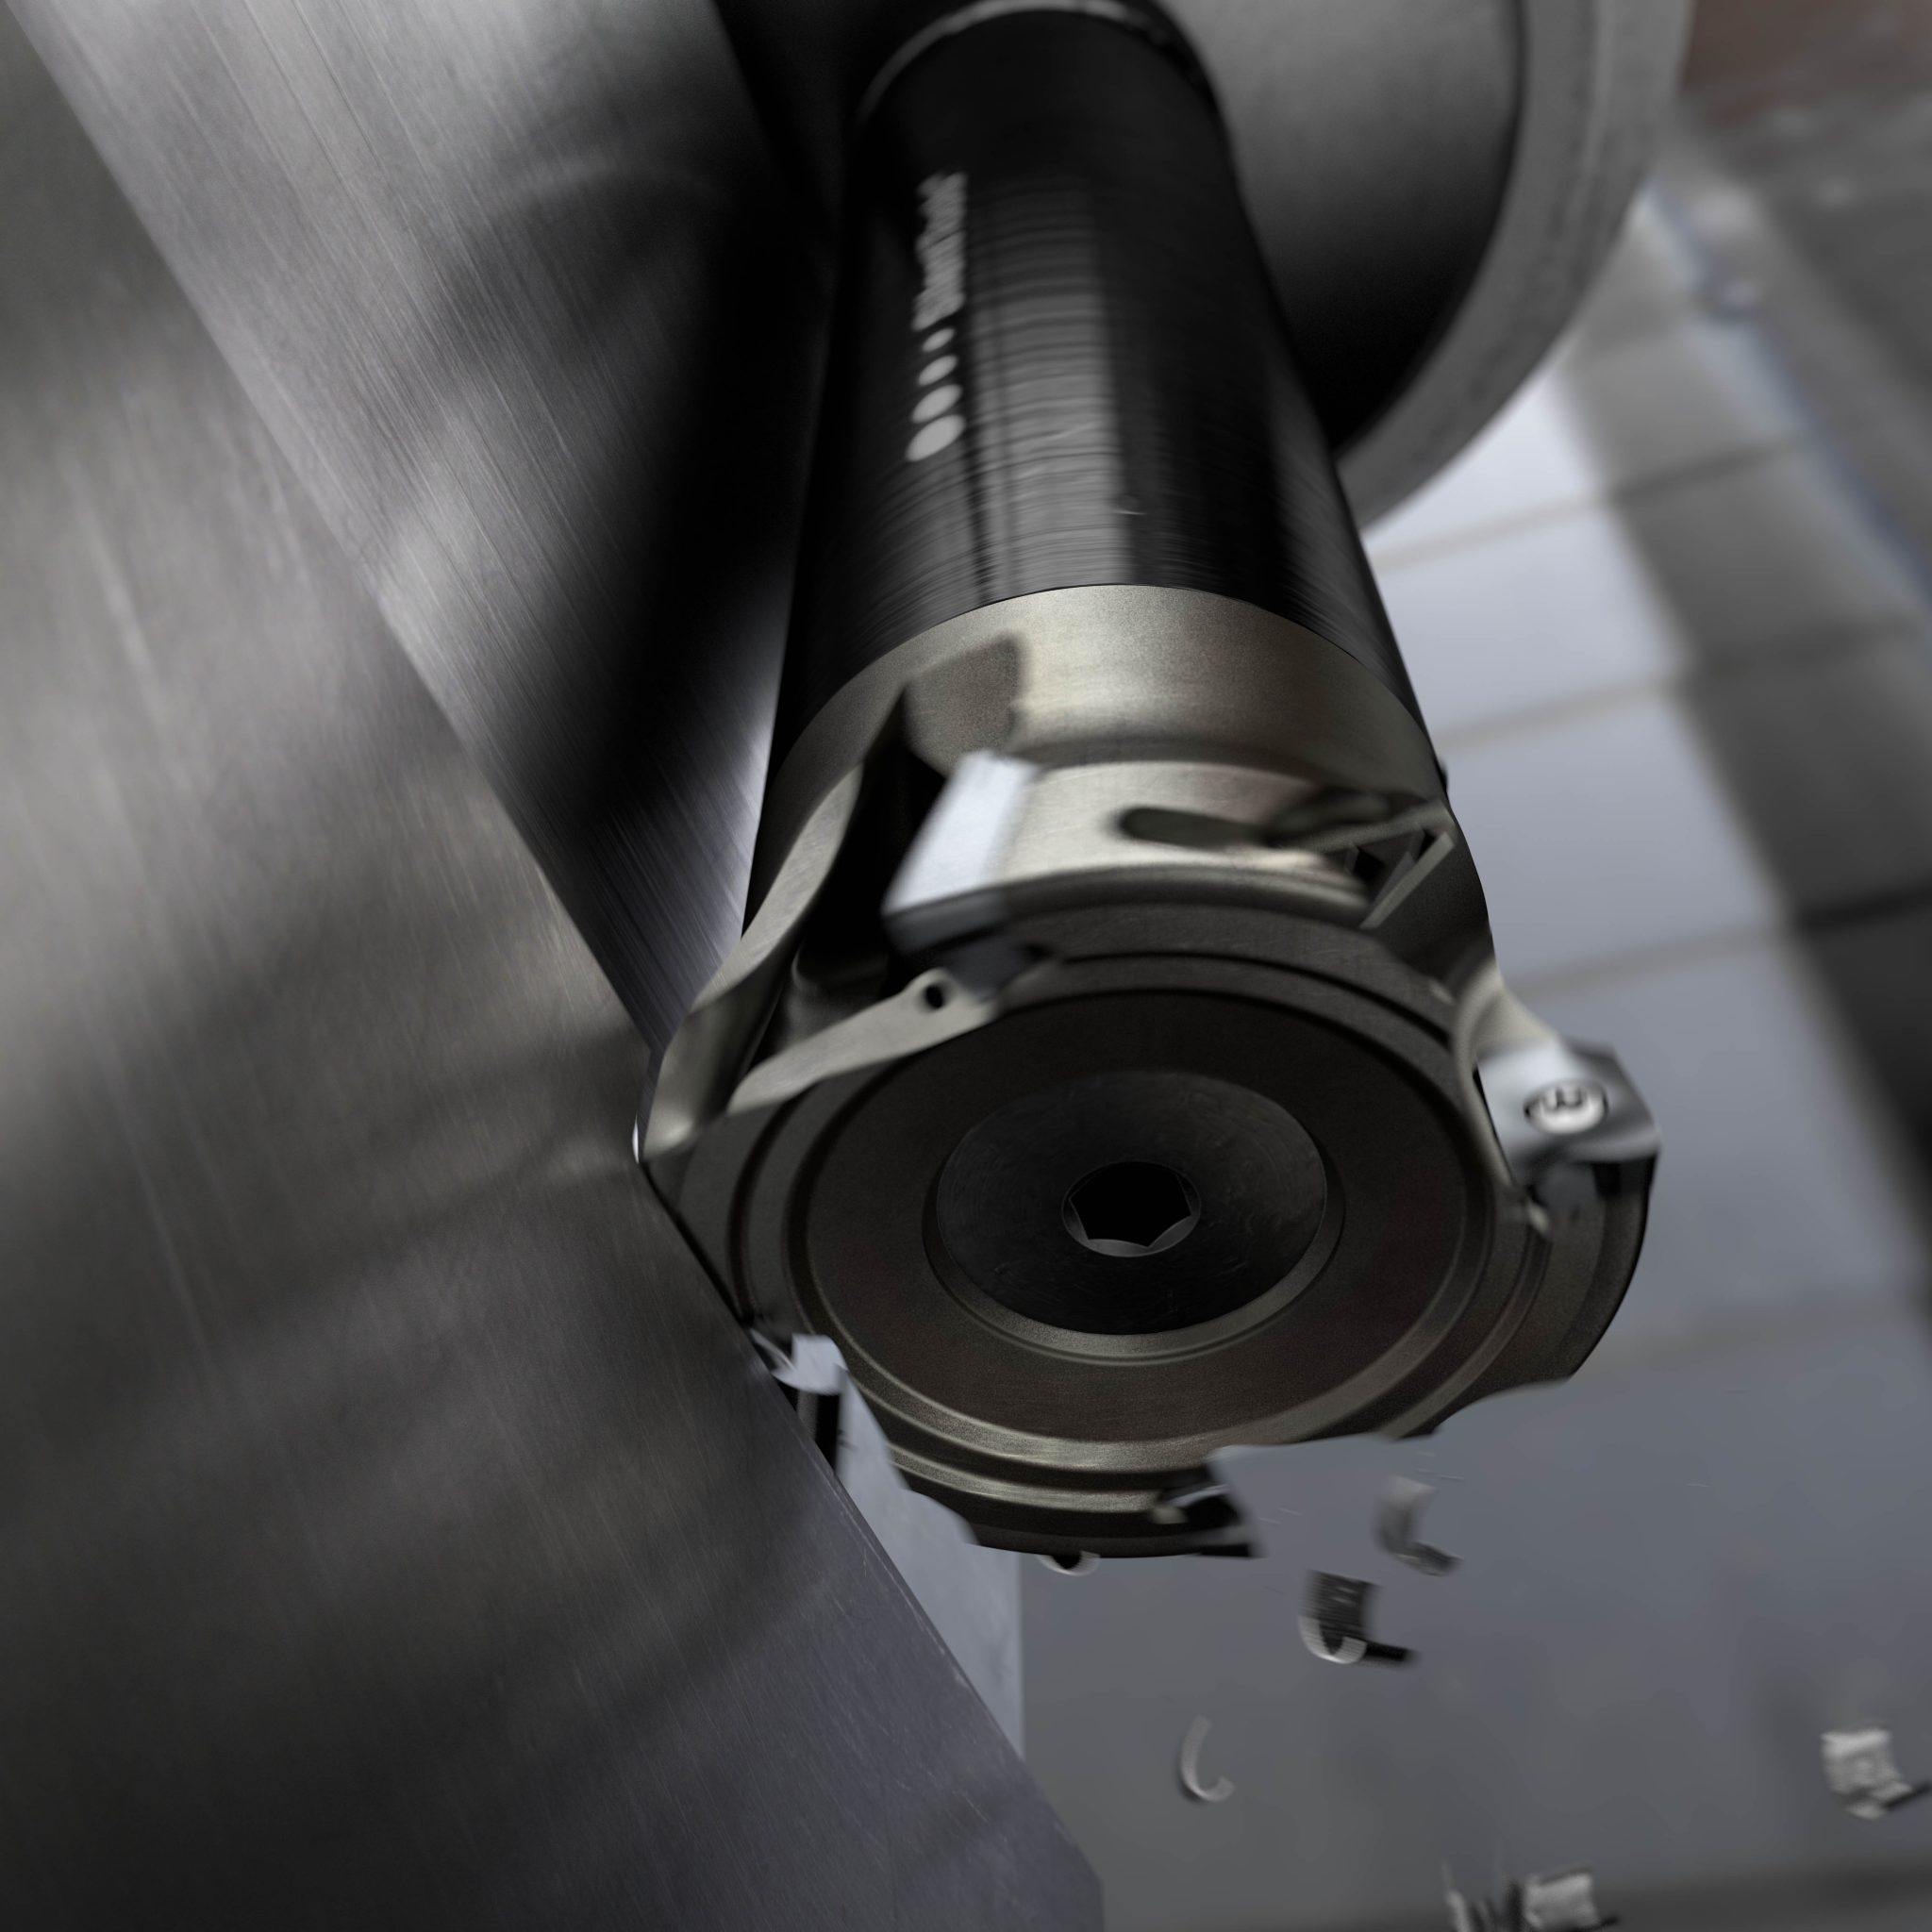 Sandvik Coromant introduces lightweight CoroMill® 390